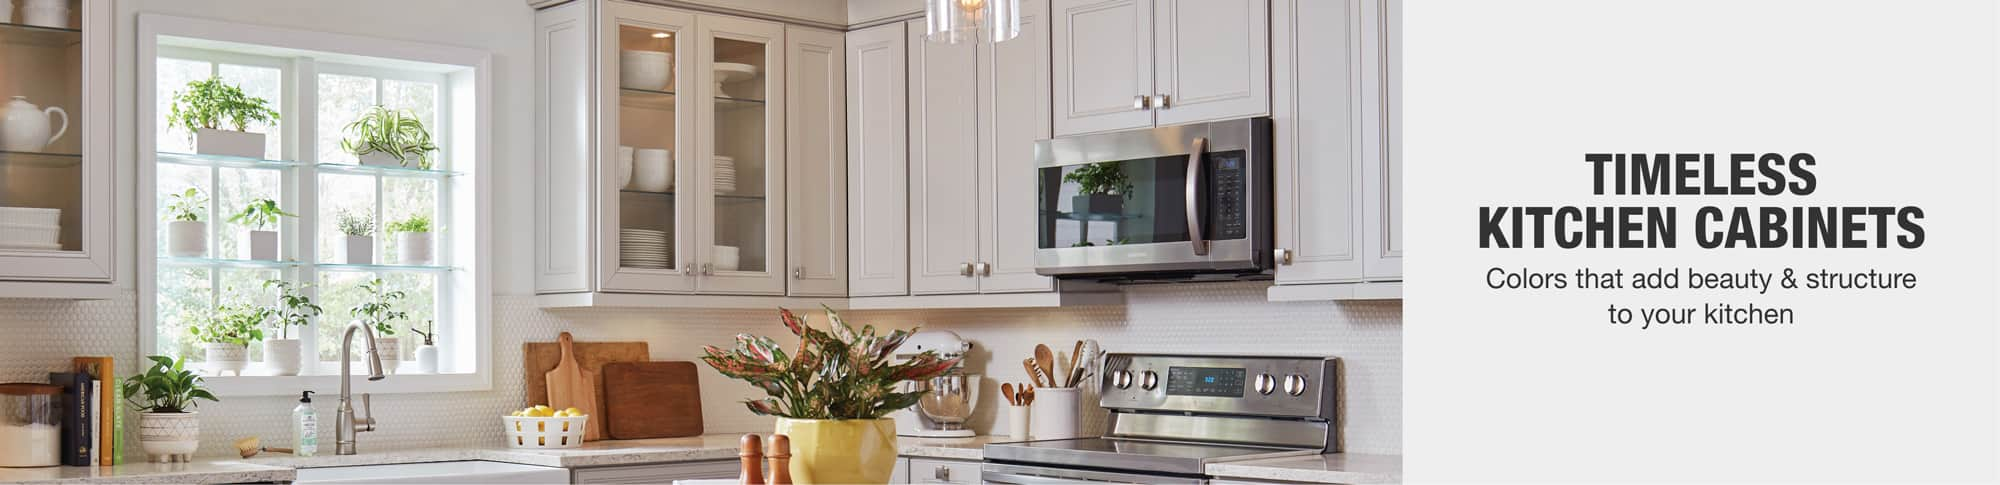 Timeless kitchen cabinets. Colors that add beauty & structure to your kitchen